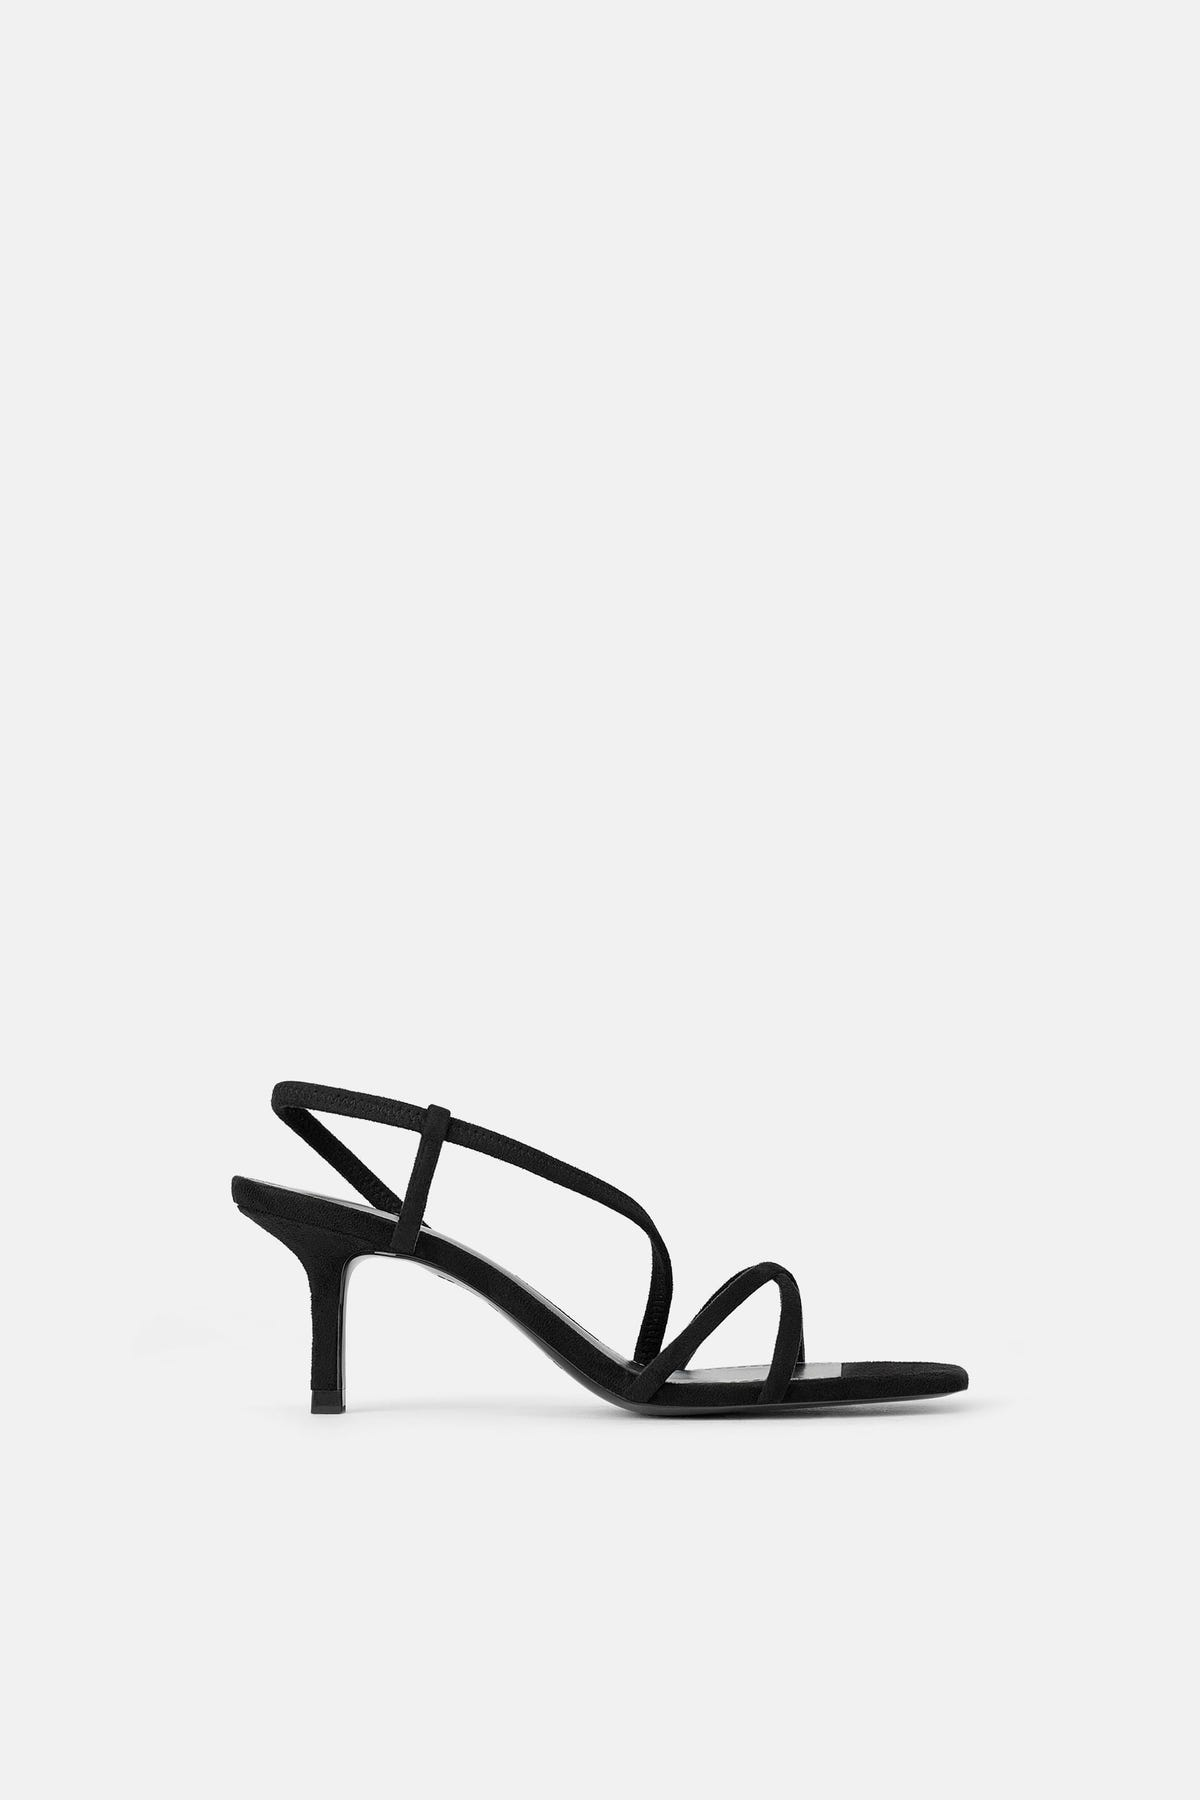 2019 To All In Heights Black Heel Sandals Buy Strappy DIW9YE2H